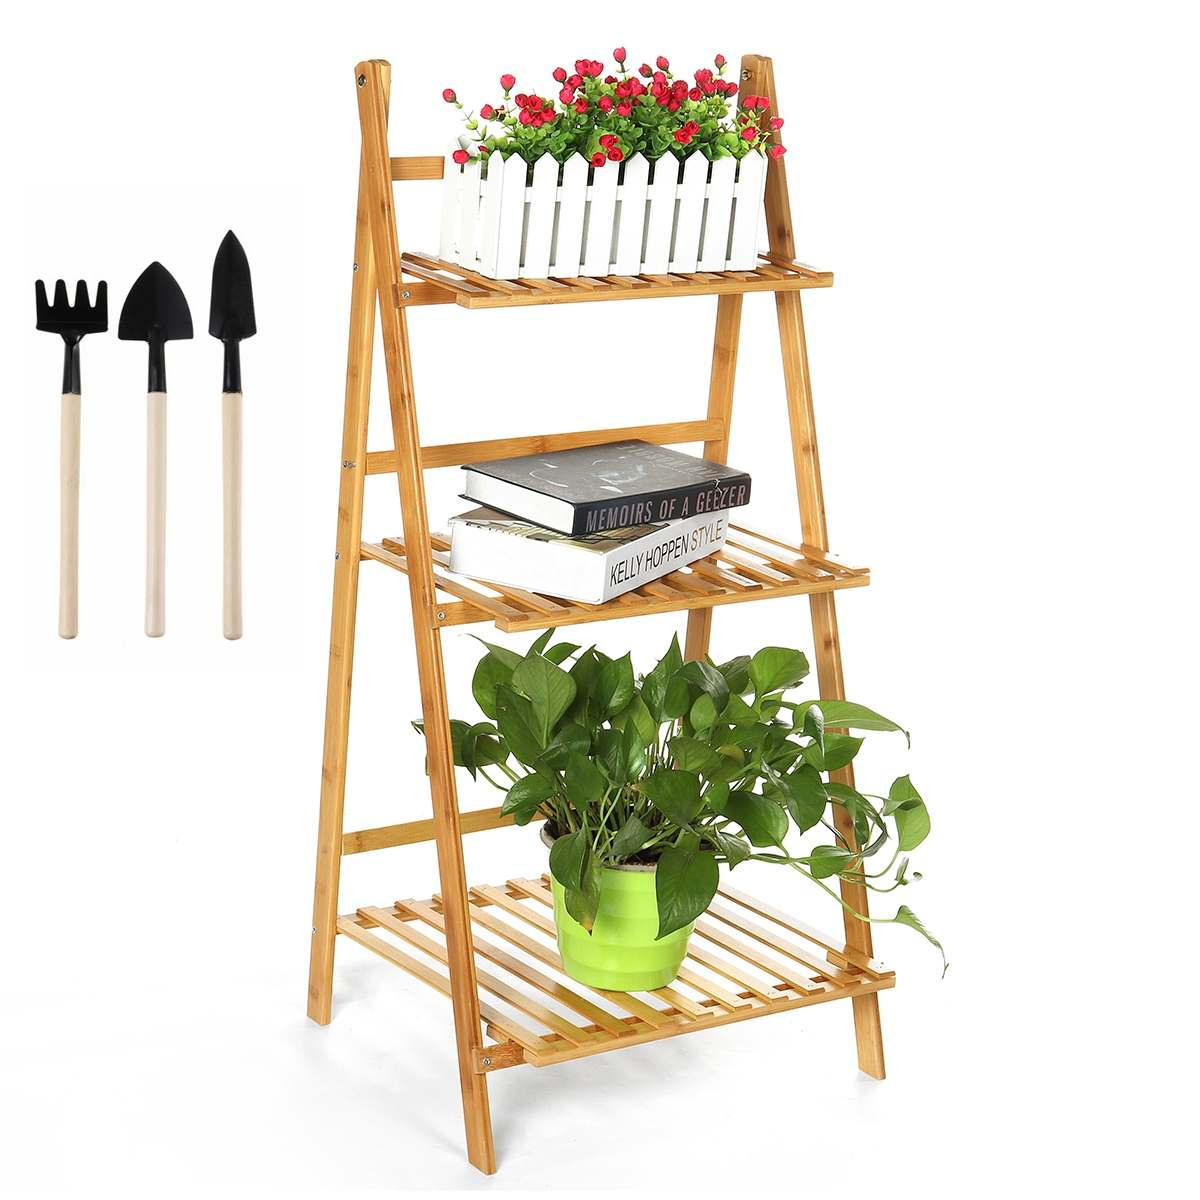 50/70/100CM Plant Stand Shelf 3 Tier Bamboo Wood Plant Flower Pots Shelves Rack Holder Indoor Outdoor with 3PCS Free Tools